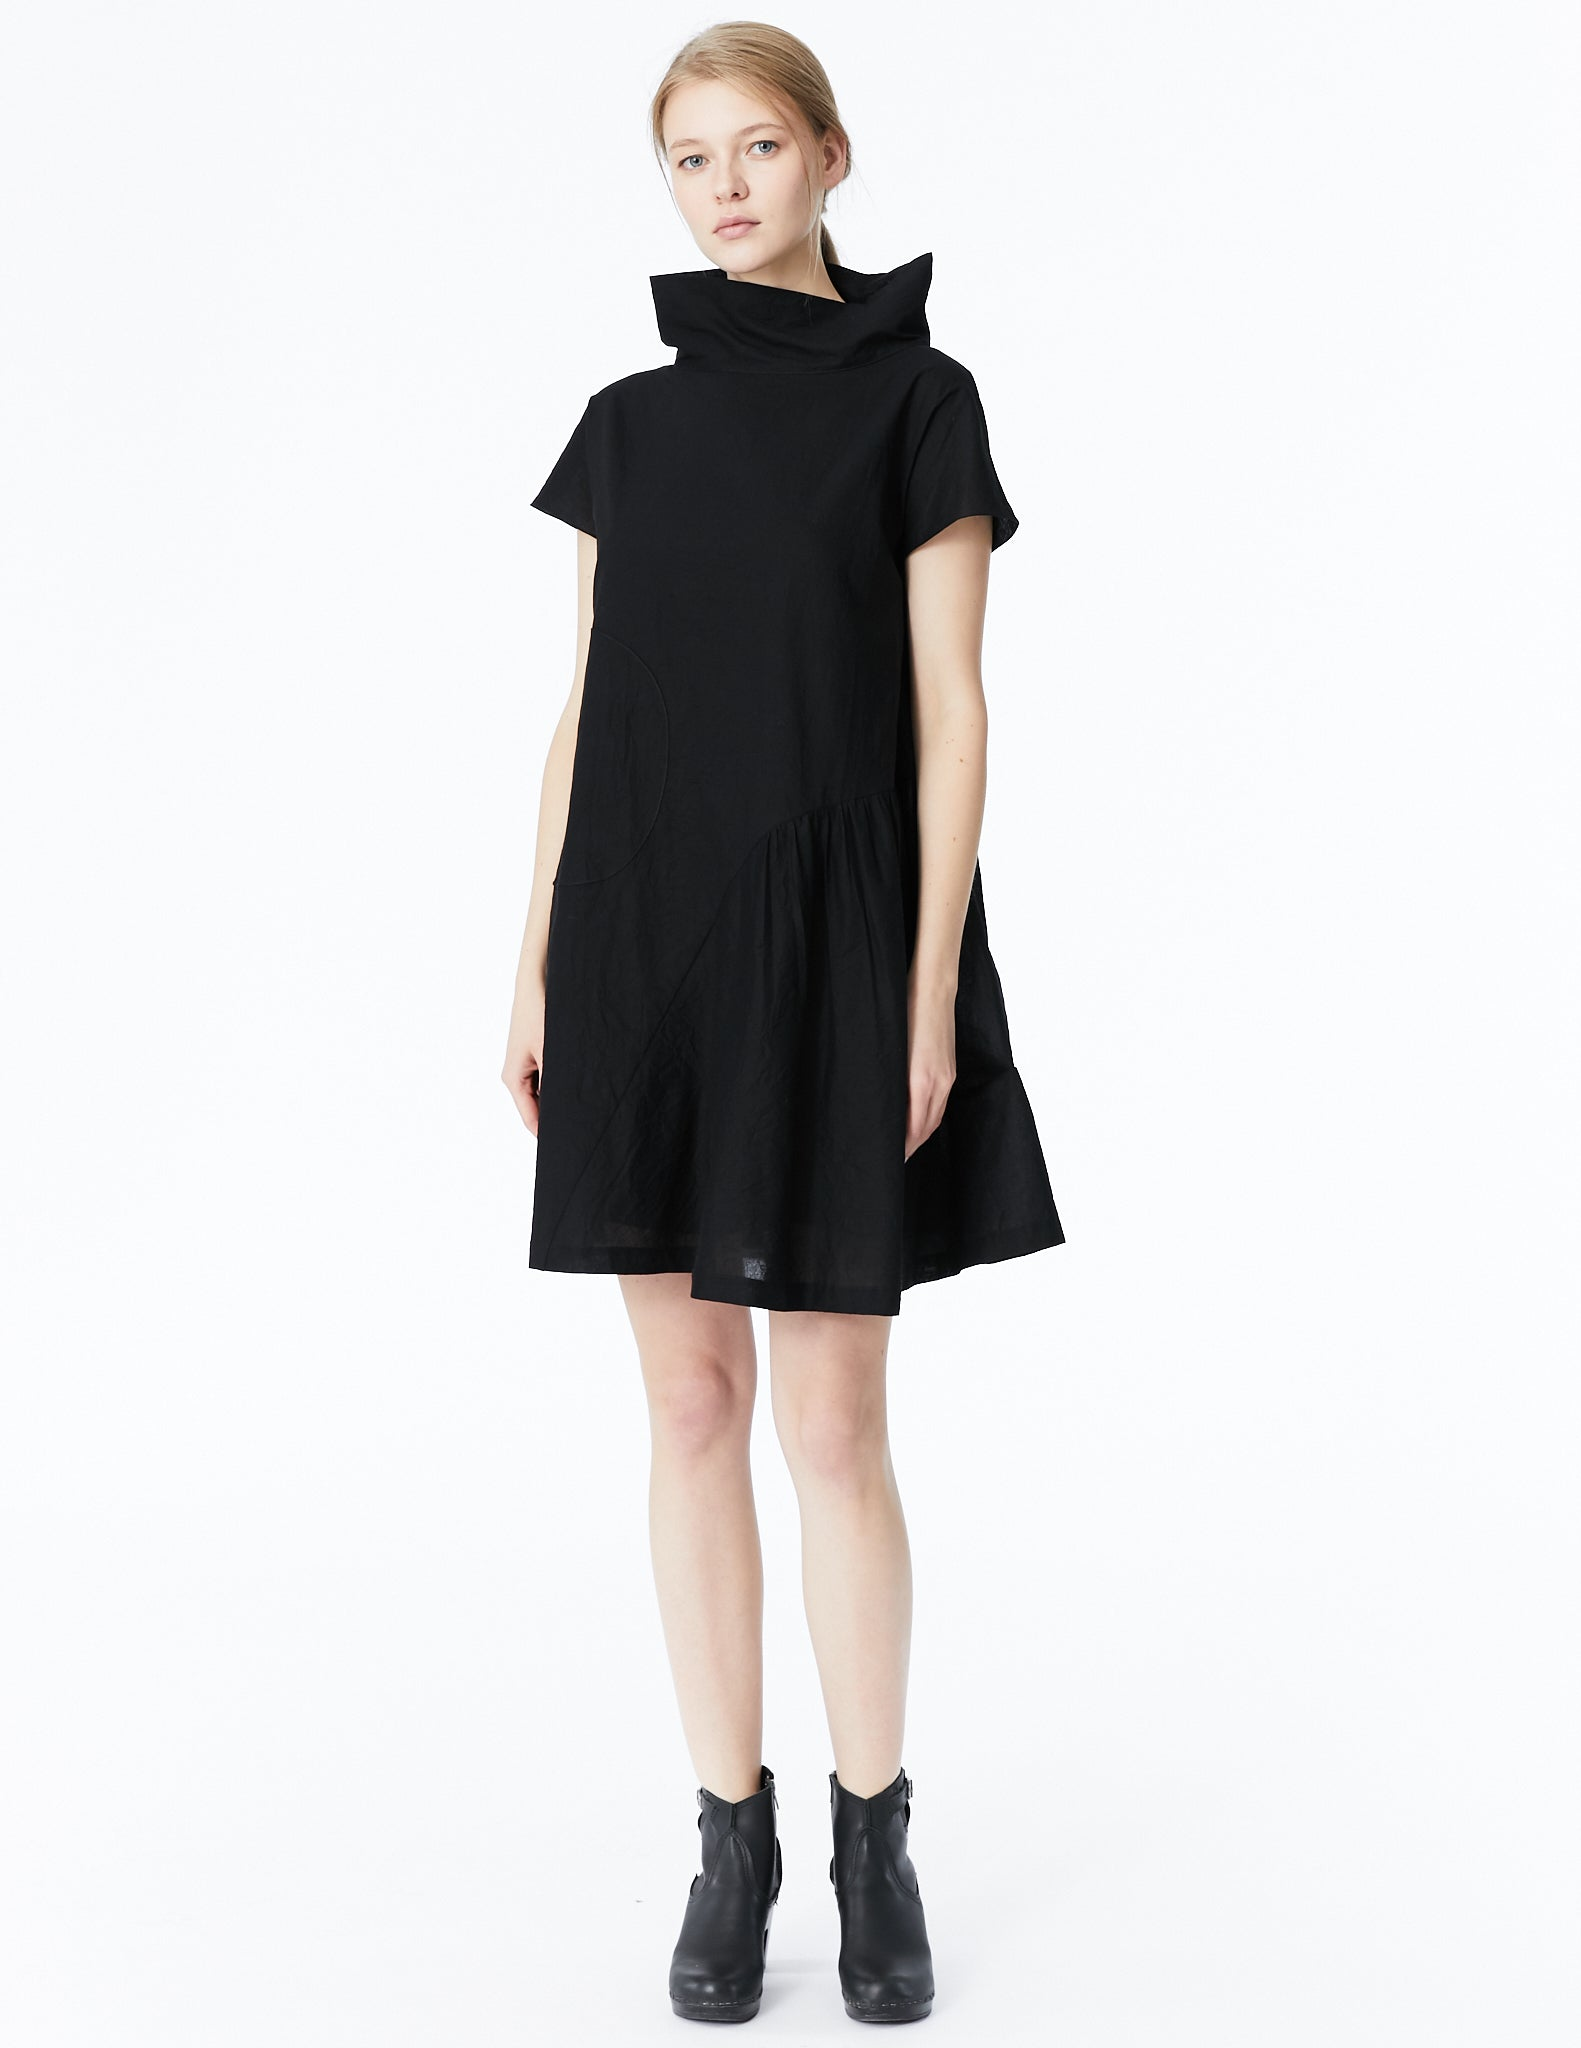 morgane le fay cotton batiste oversized dress with high collar and curved gathered panel with optional drape